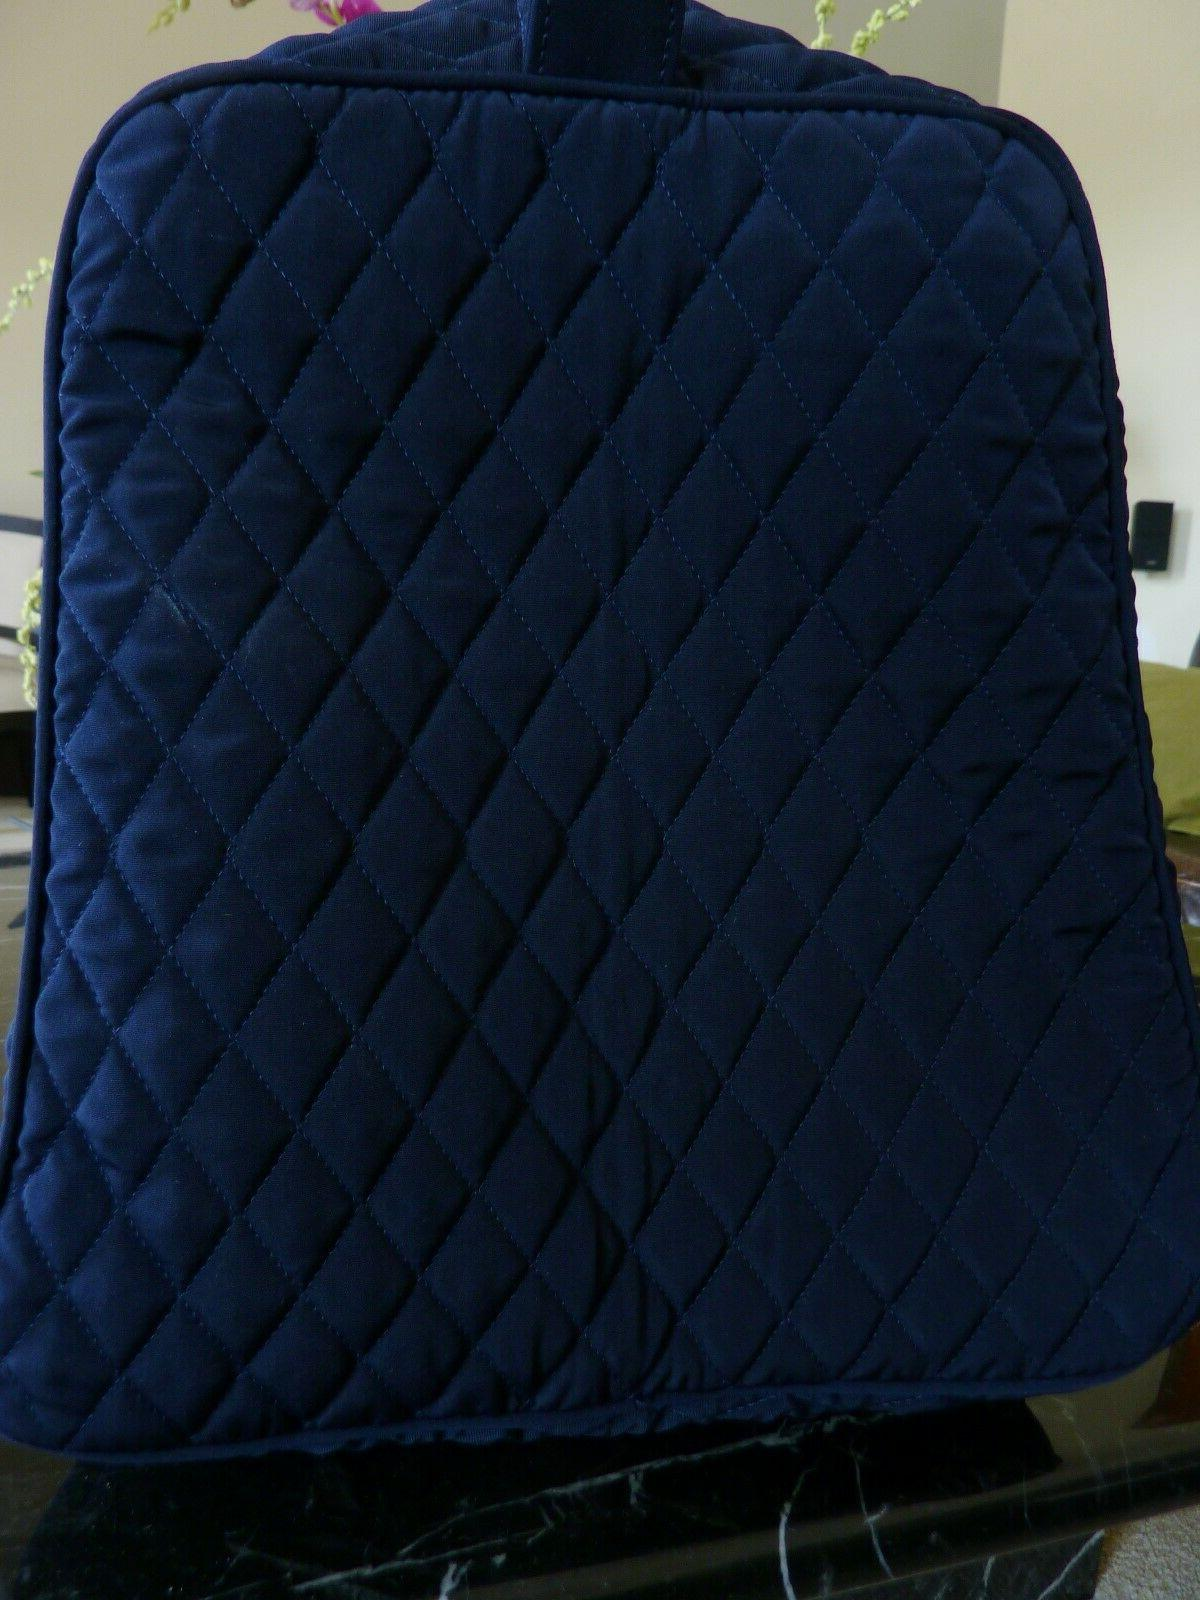 / TRAVEL / BAG CLASSIC NAVY $108